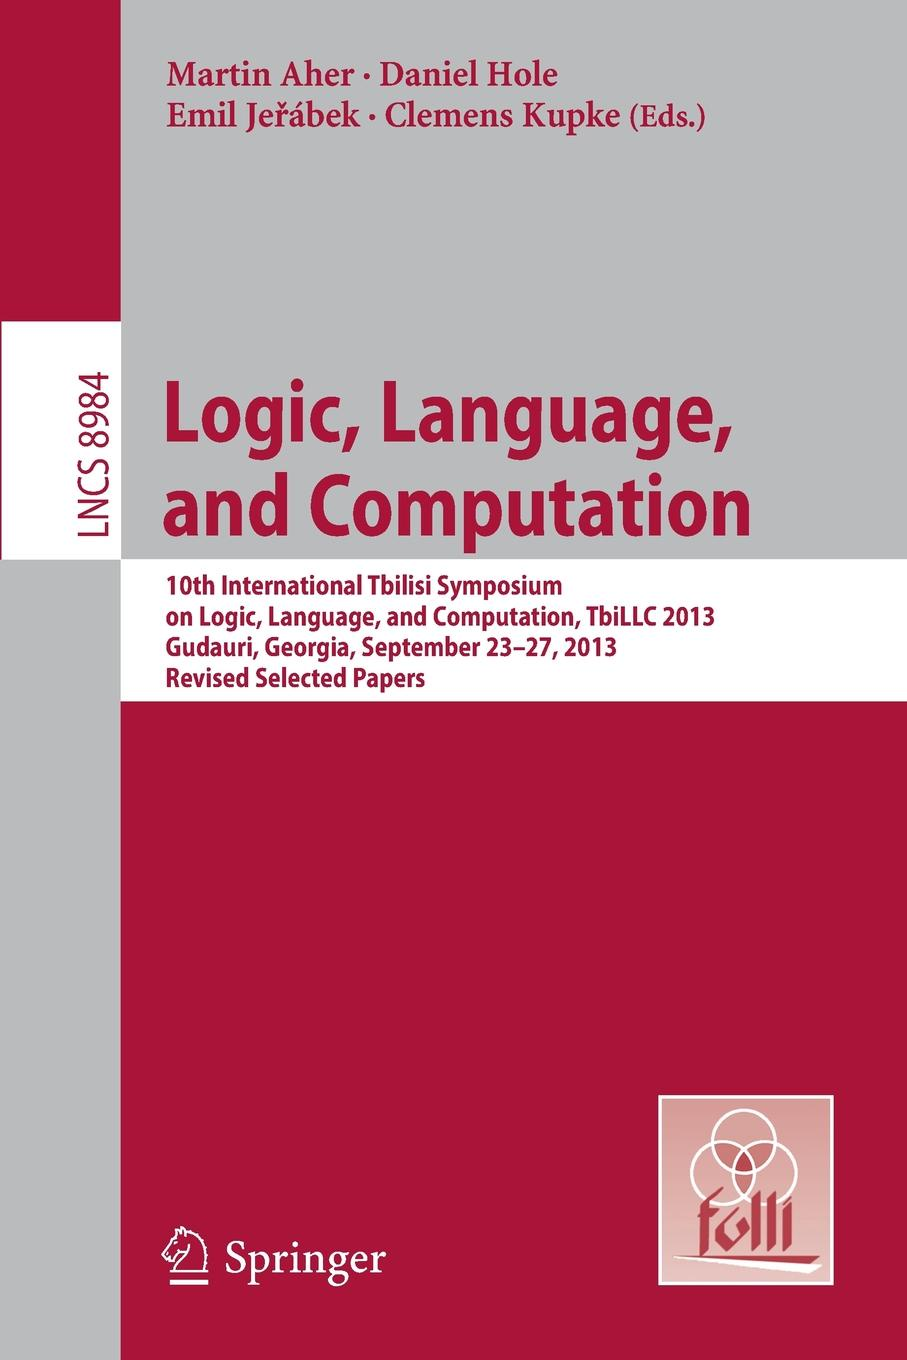 Logic, Language, and Computation. 10th International Tbilisi Symposium on Logic, Language, and Computation, TbiLLC 2013, Gudauri, Georgia, September 23-27, 2013. Revised Selected Papers ролик захвата бумаги hp cp1215